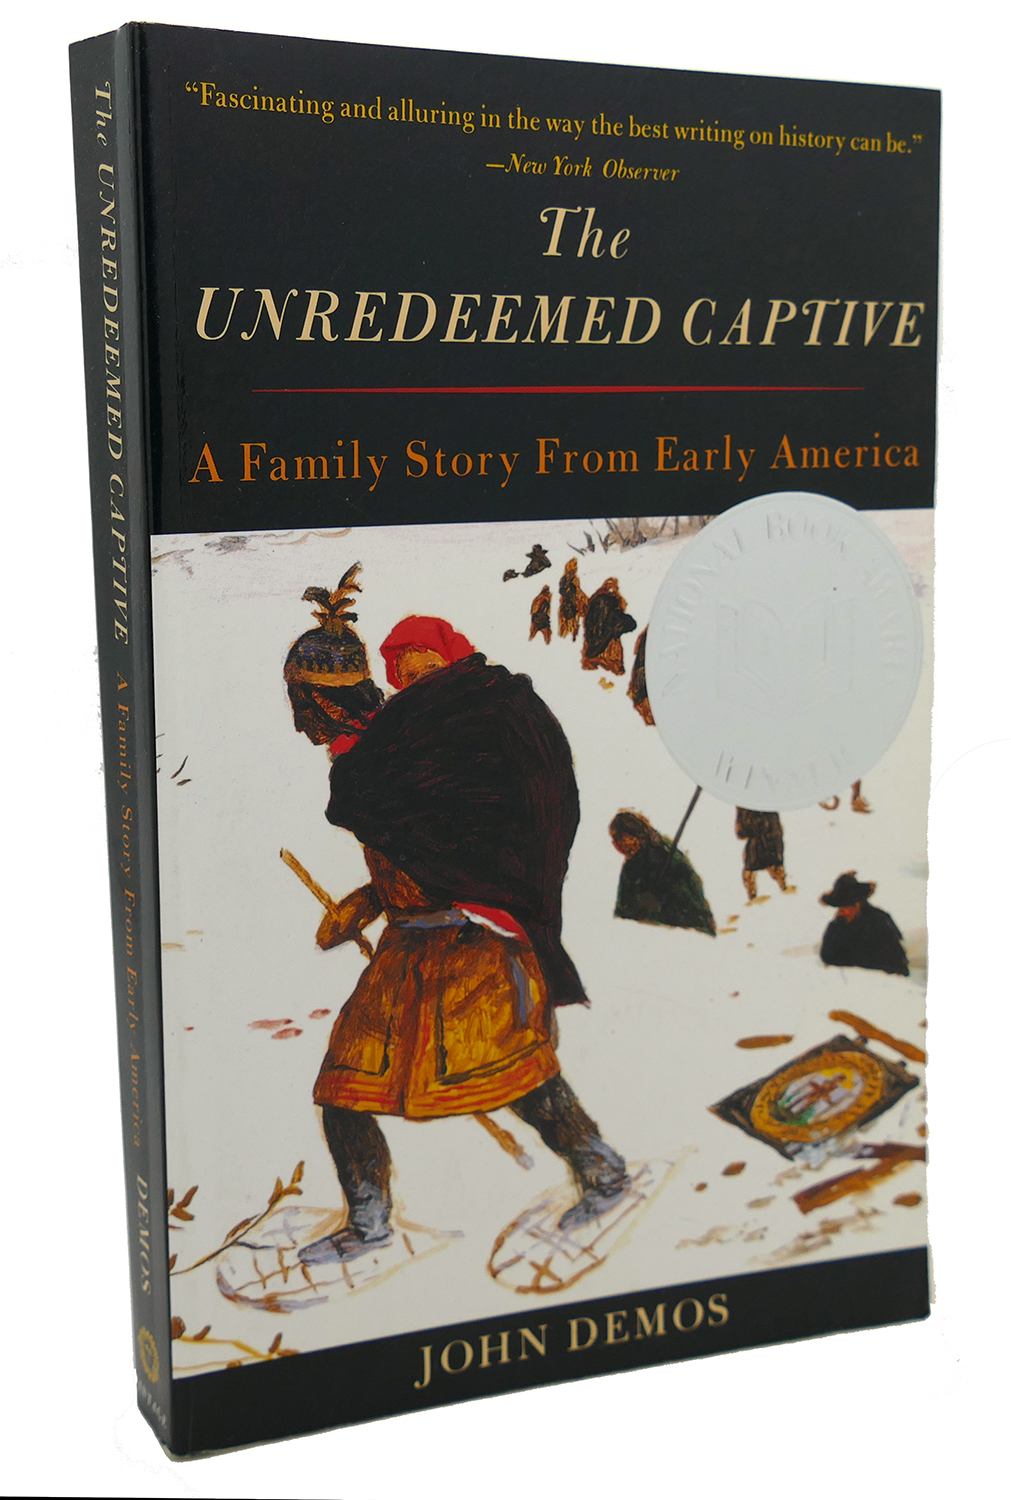 the unredeemed captive by john demos essay The unredeemed captive is a fascinating chronicle of life in puritan new england it is journey of the abduction and adoption of american settlers by i found the unredeemed captive to be a fascinating book on both the literary and the historical level john demos takes you into the lives of.